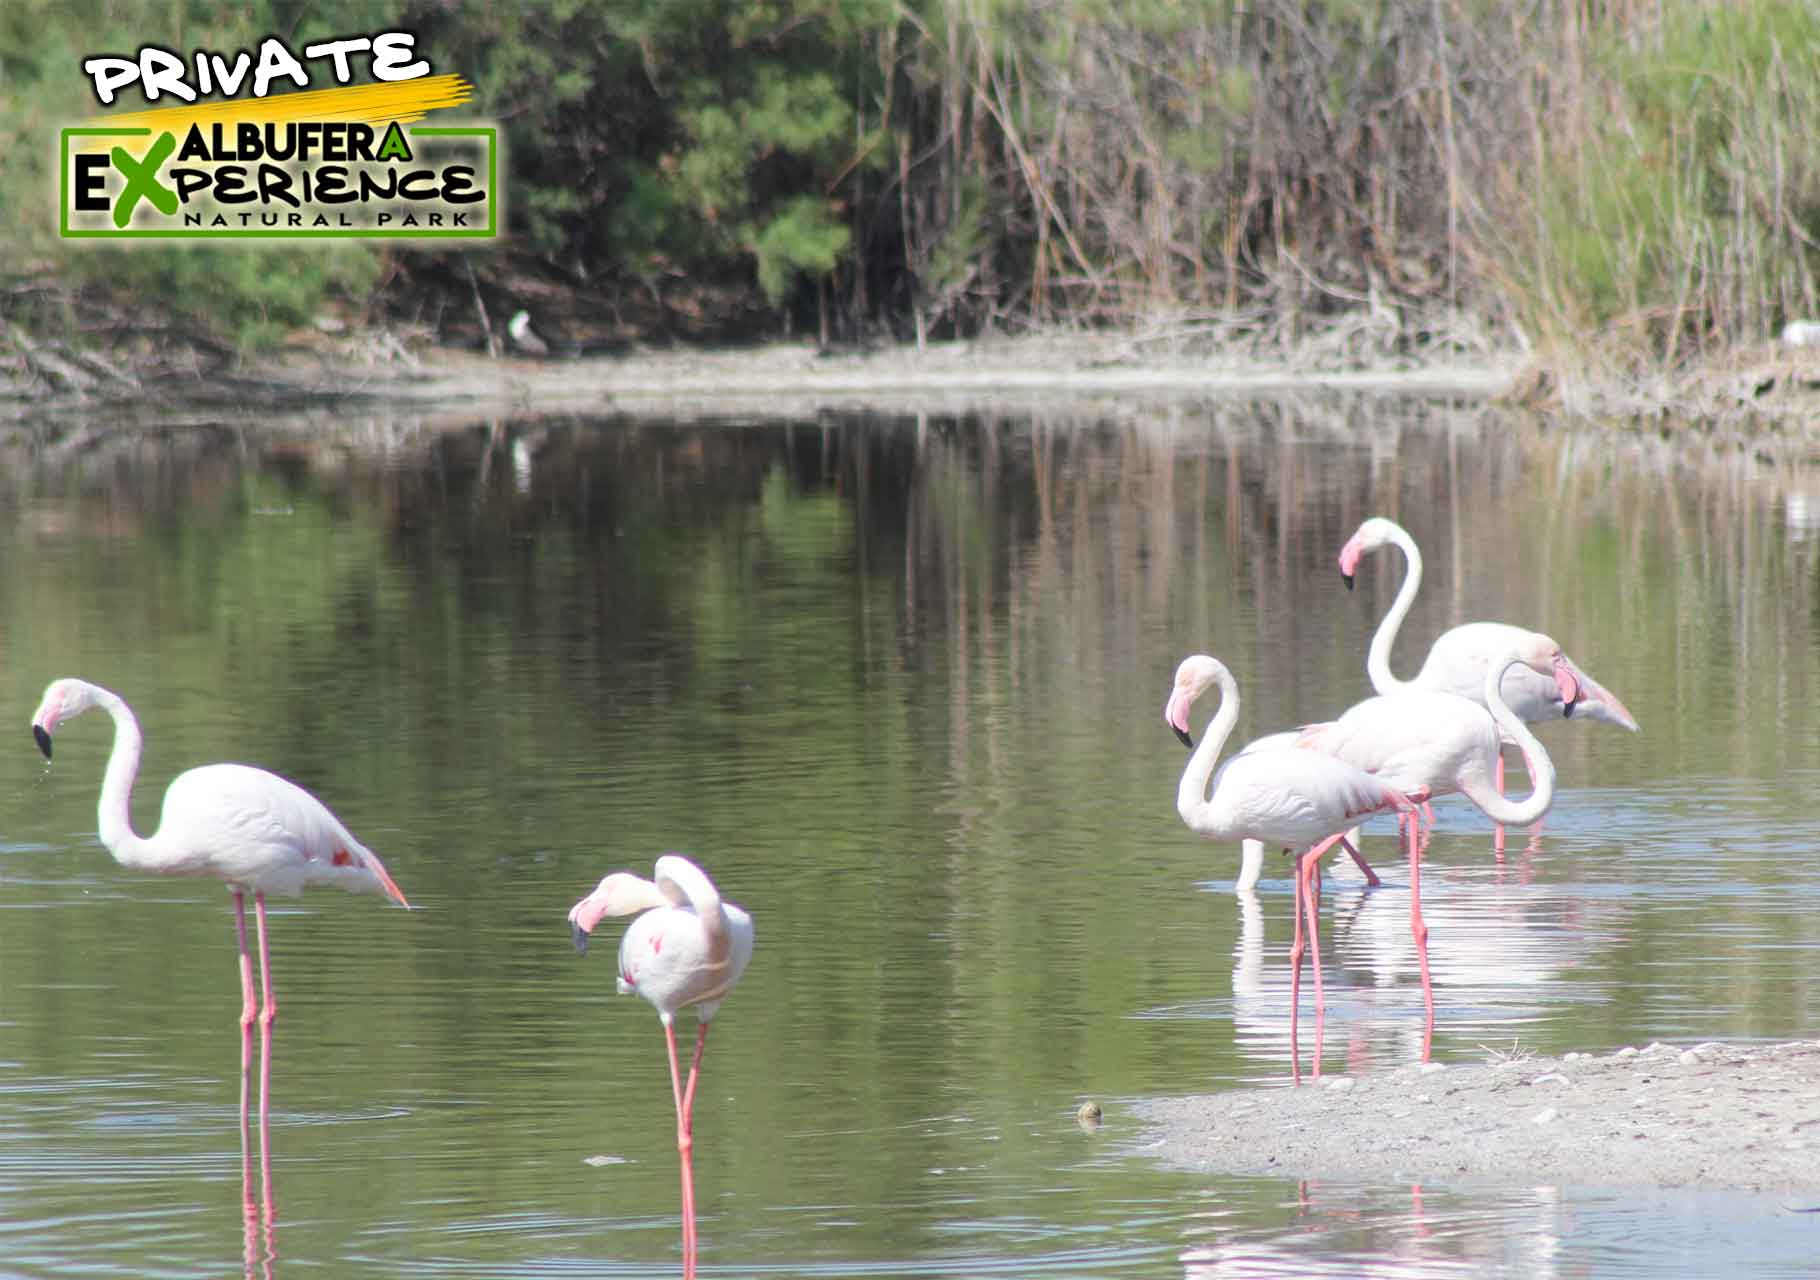 Visit Albufera Park in a private tour